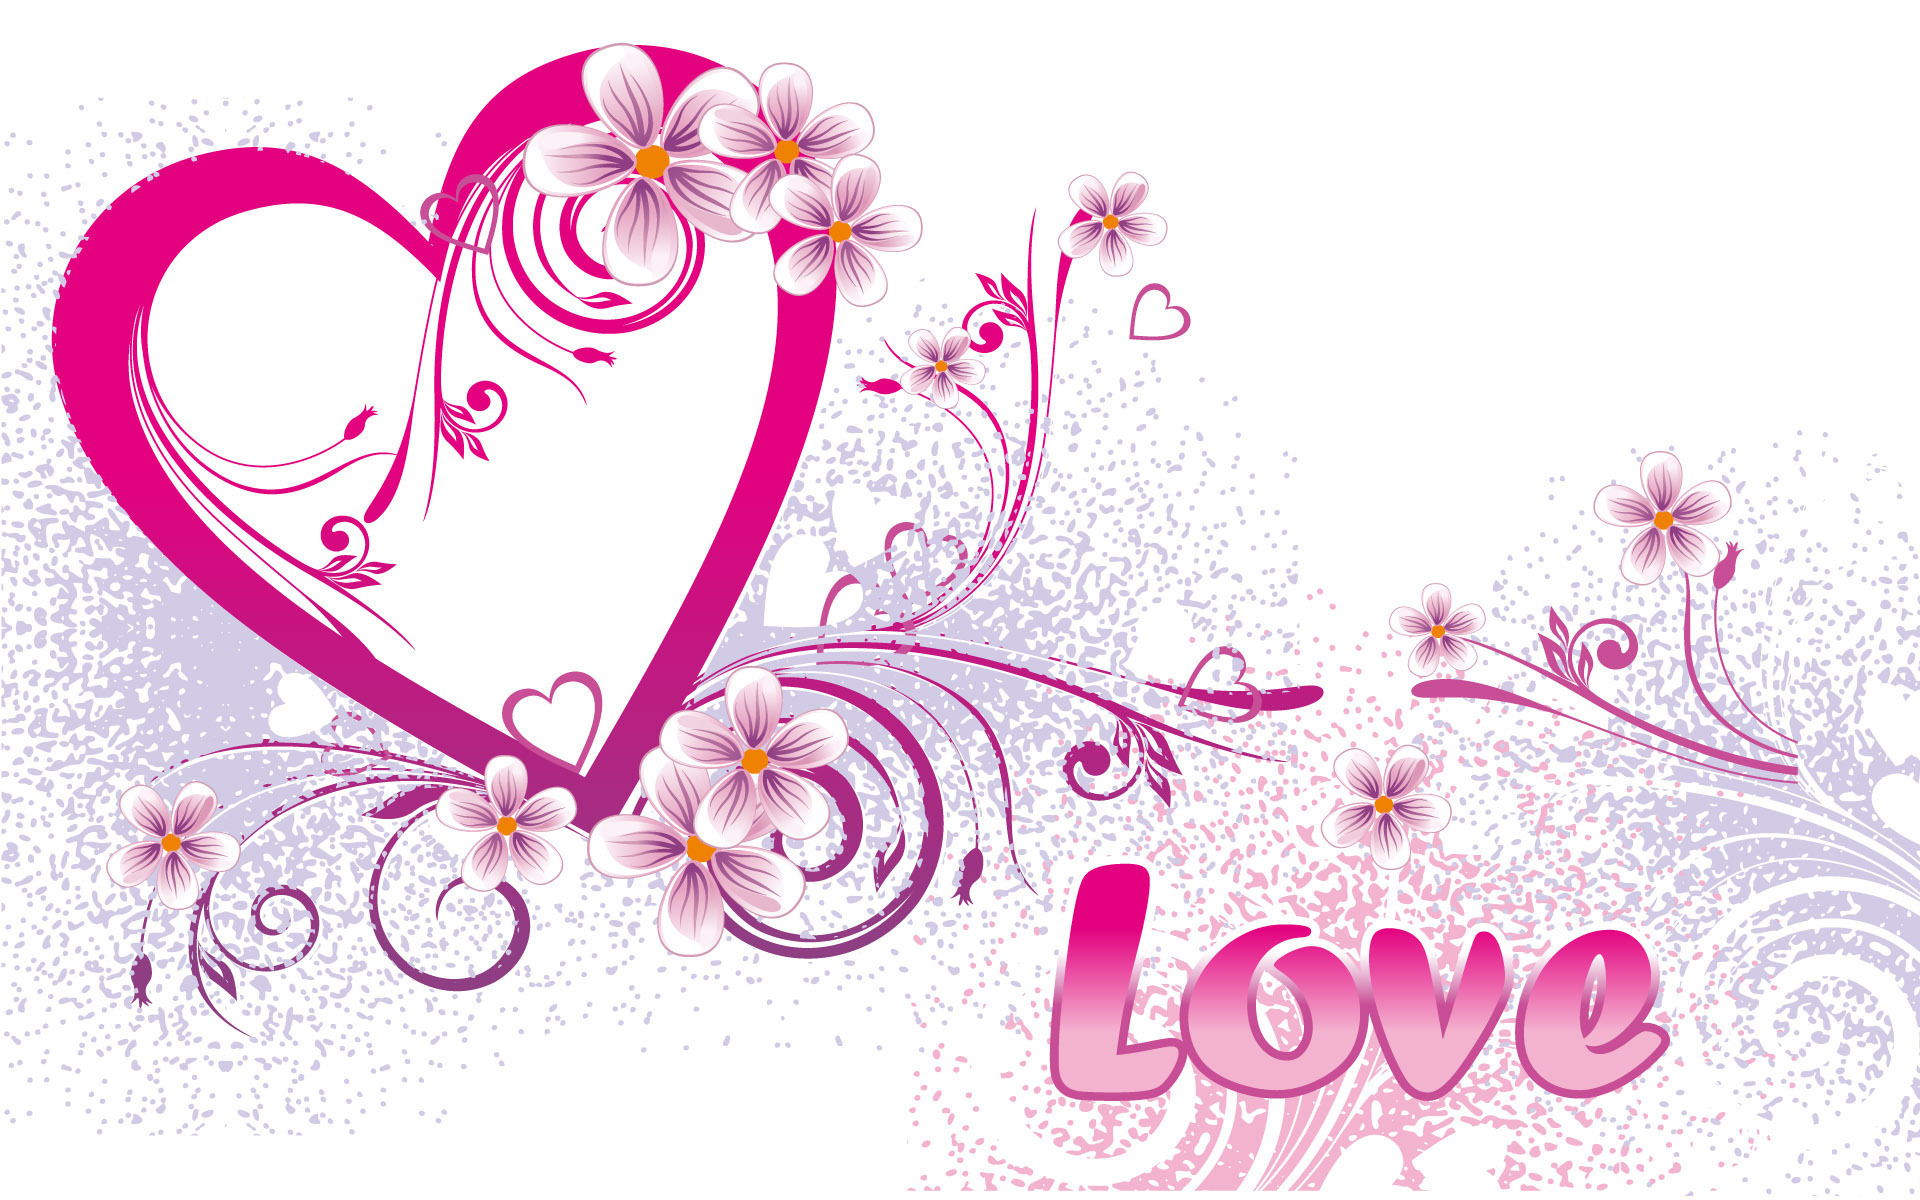 Gm Wallpaper For Love : Heart^love - Love Wallpaper (13864816) - Fanpop